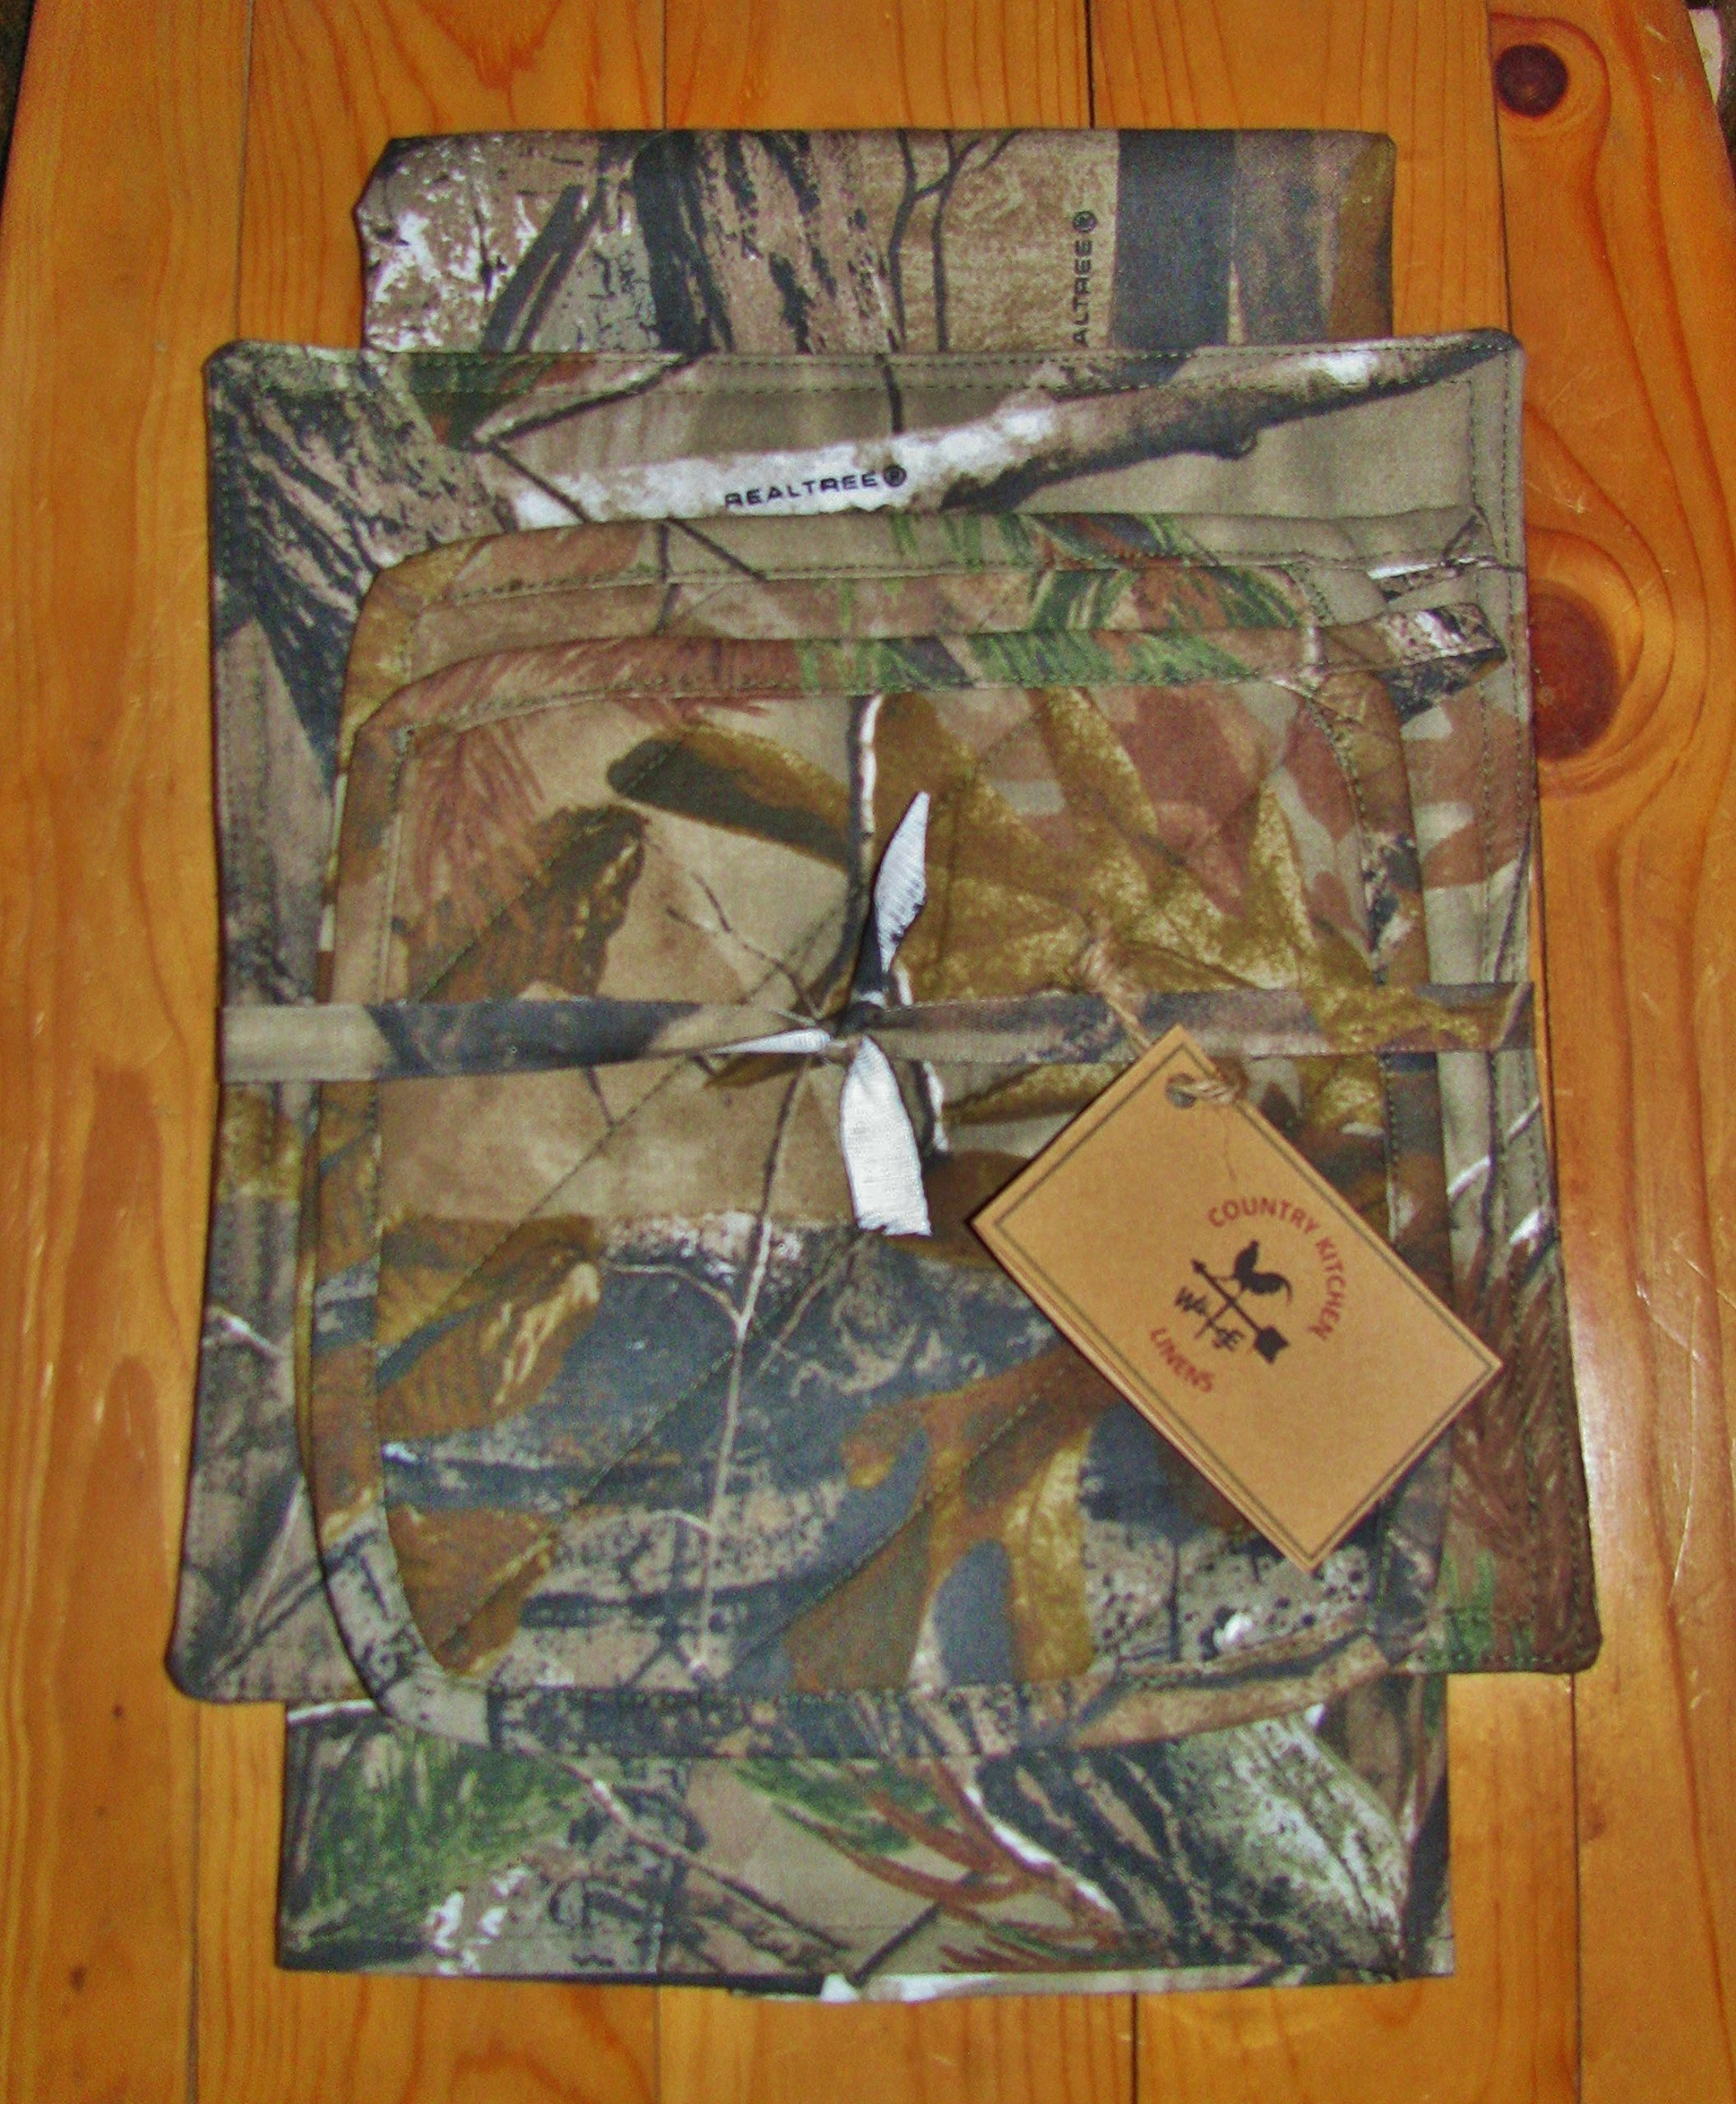 Tree Camo Kitchen Linens Set (5 Items Total) by Country Kitchen Linens